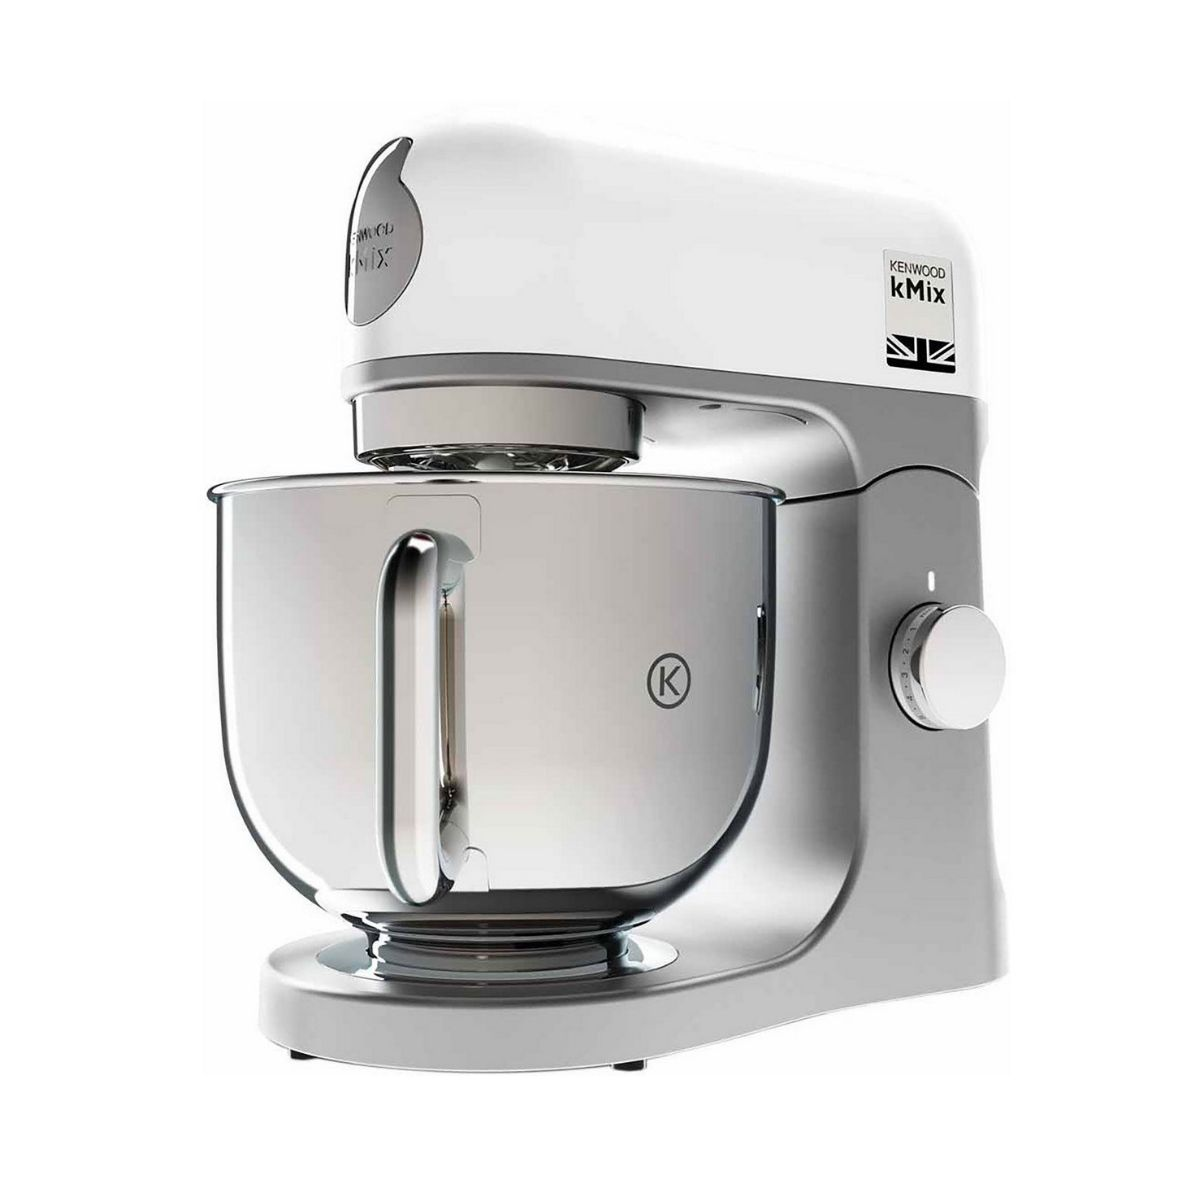 Kenwood kMix Freestanding Food Mixer